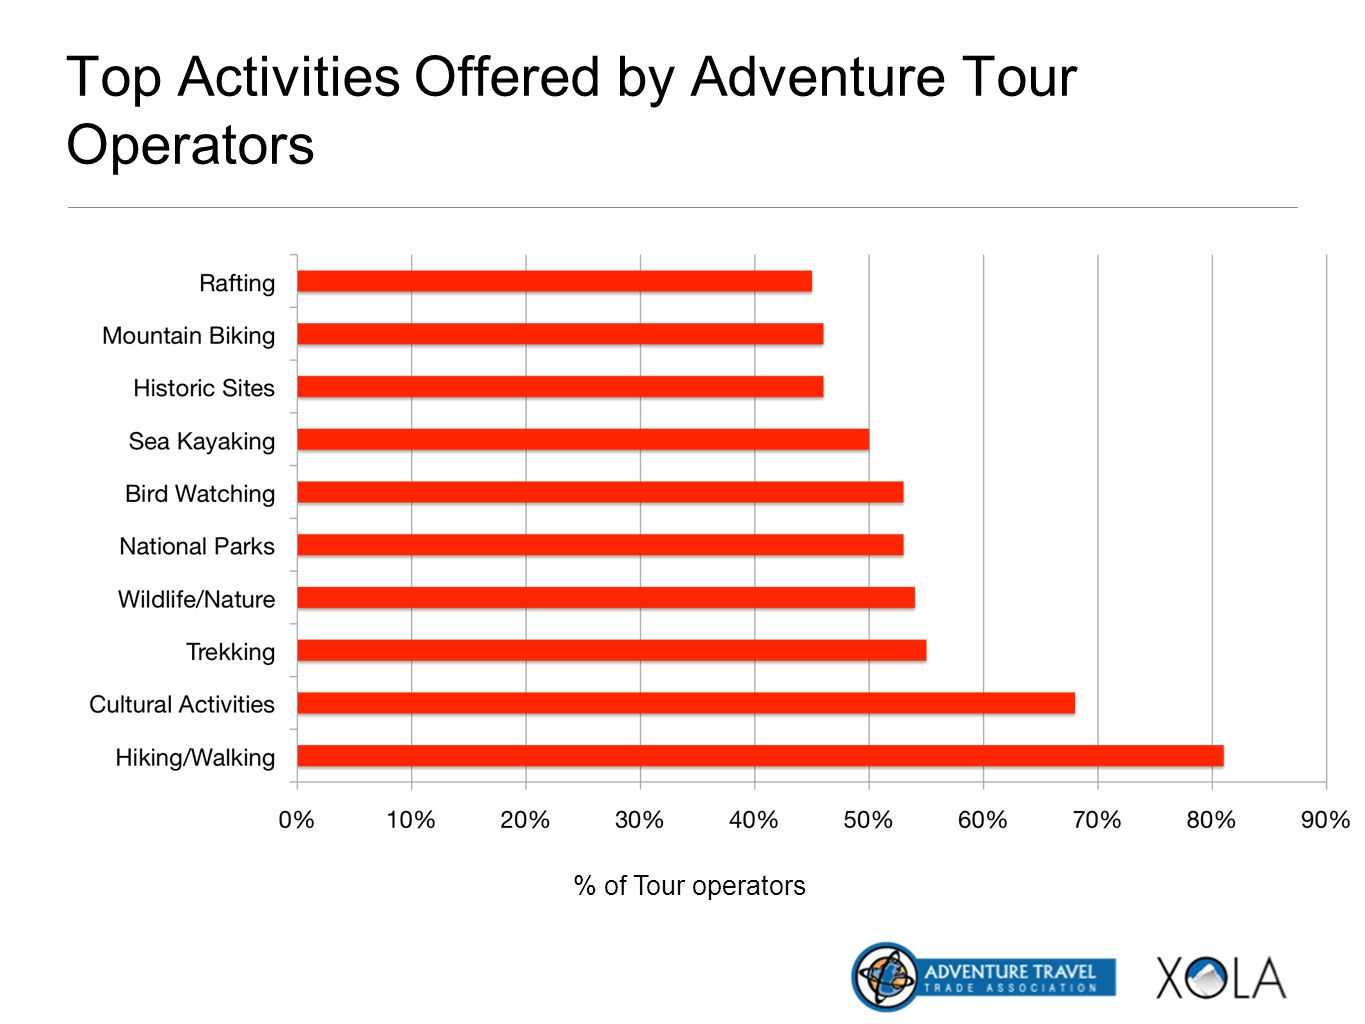 Top Activities Offered by Adventure Tour Operators